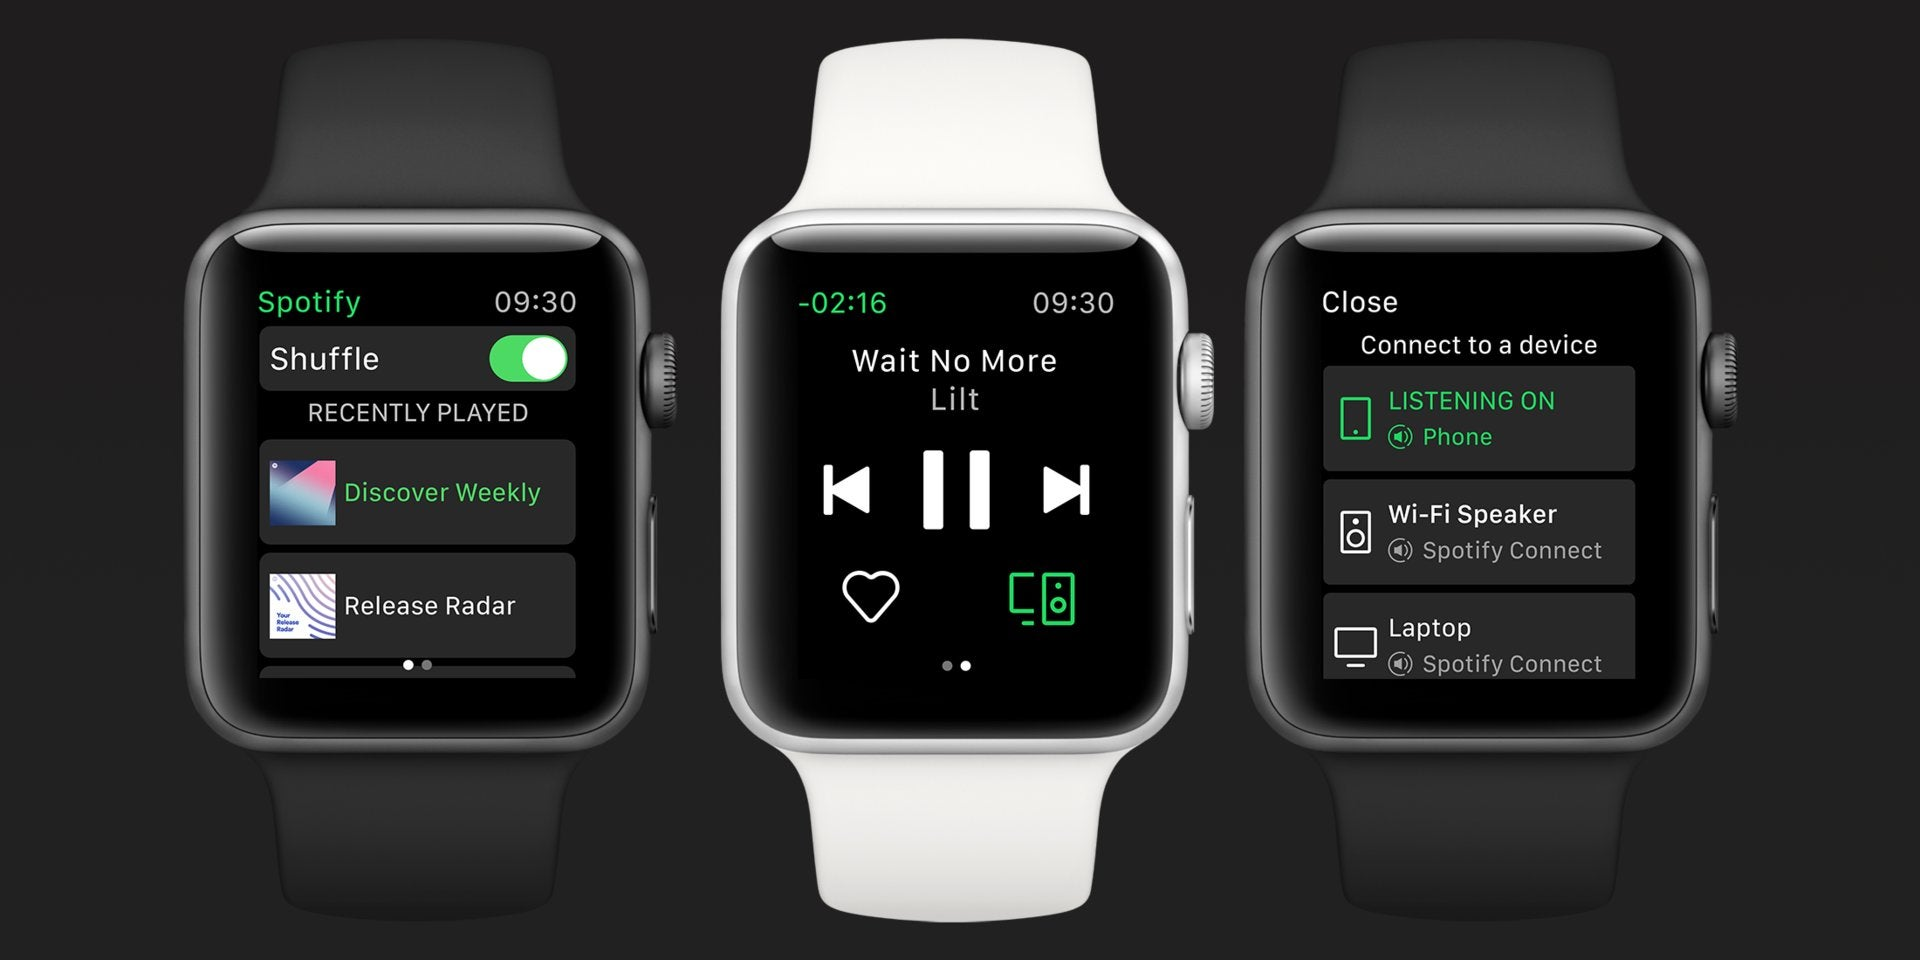 Spotify's Official Apple Watch App Is On Its Way, Missing Key Features